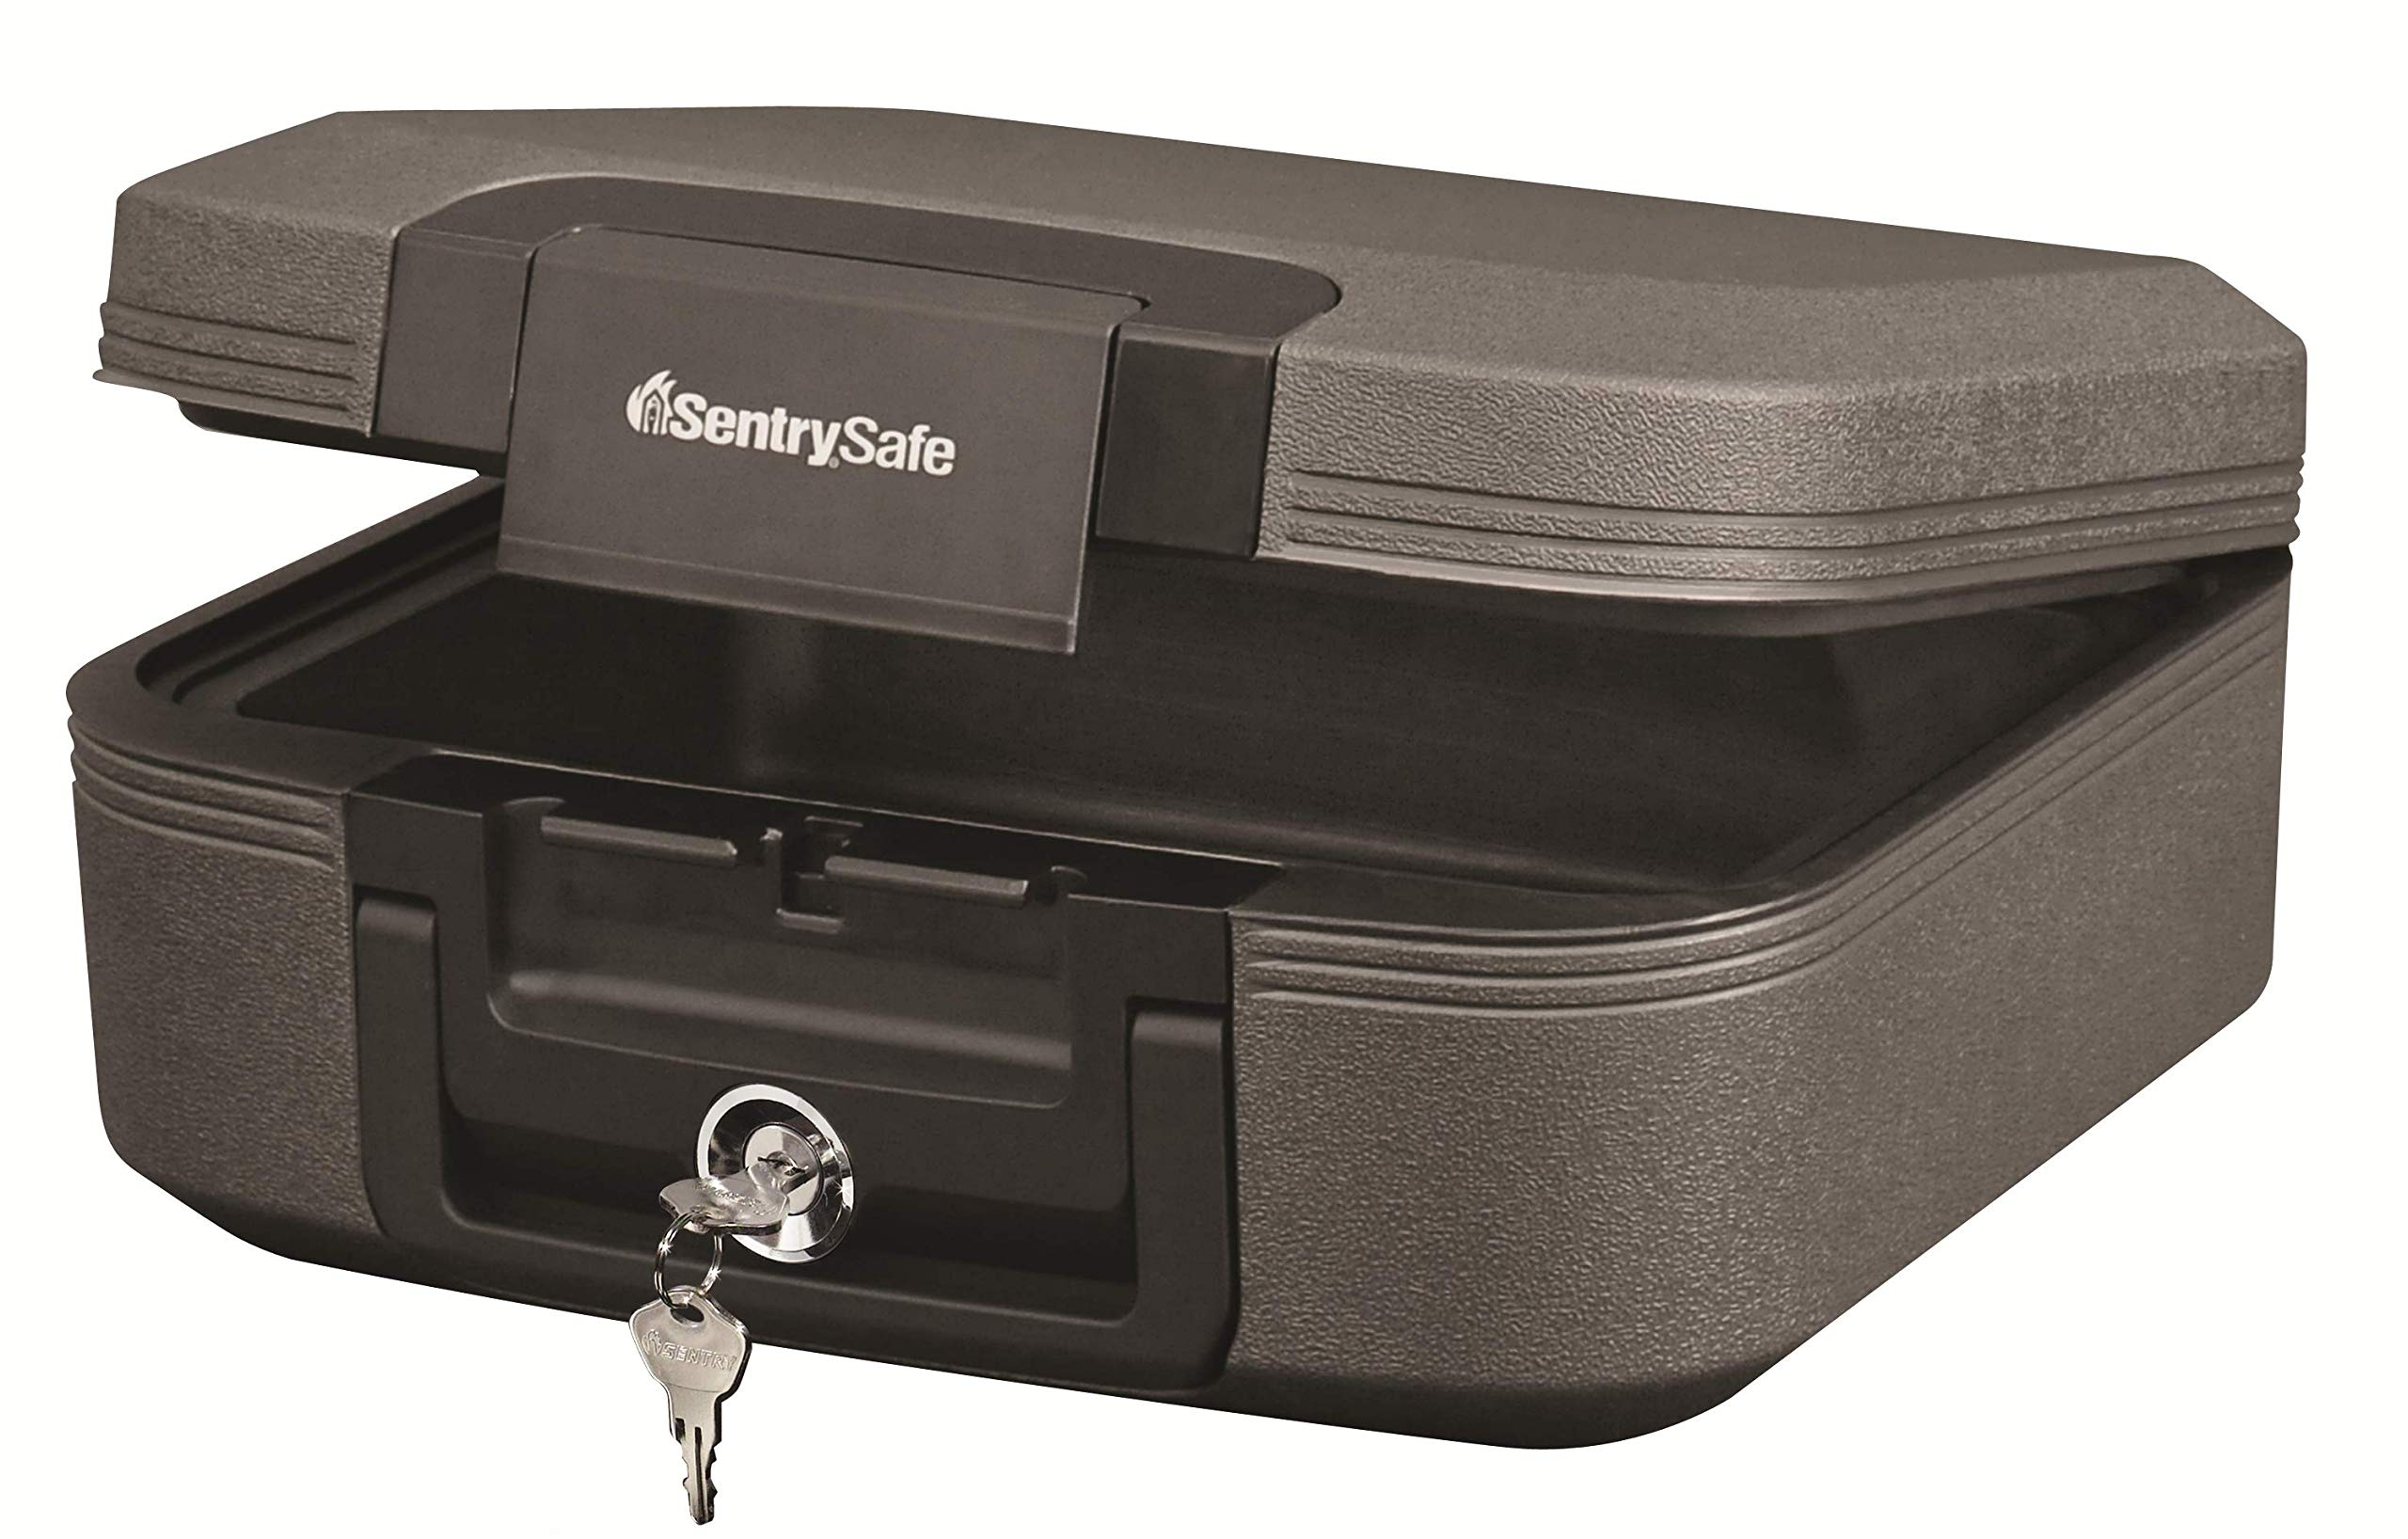 BIGWORDS com   SentrySafe CHW20101 Fire Chests, Safes   0049074022402 - Buy  new and used Home Improvements, books and more